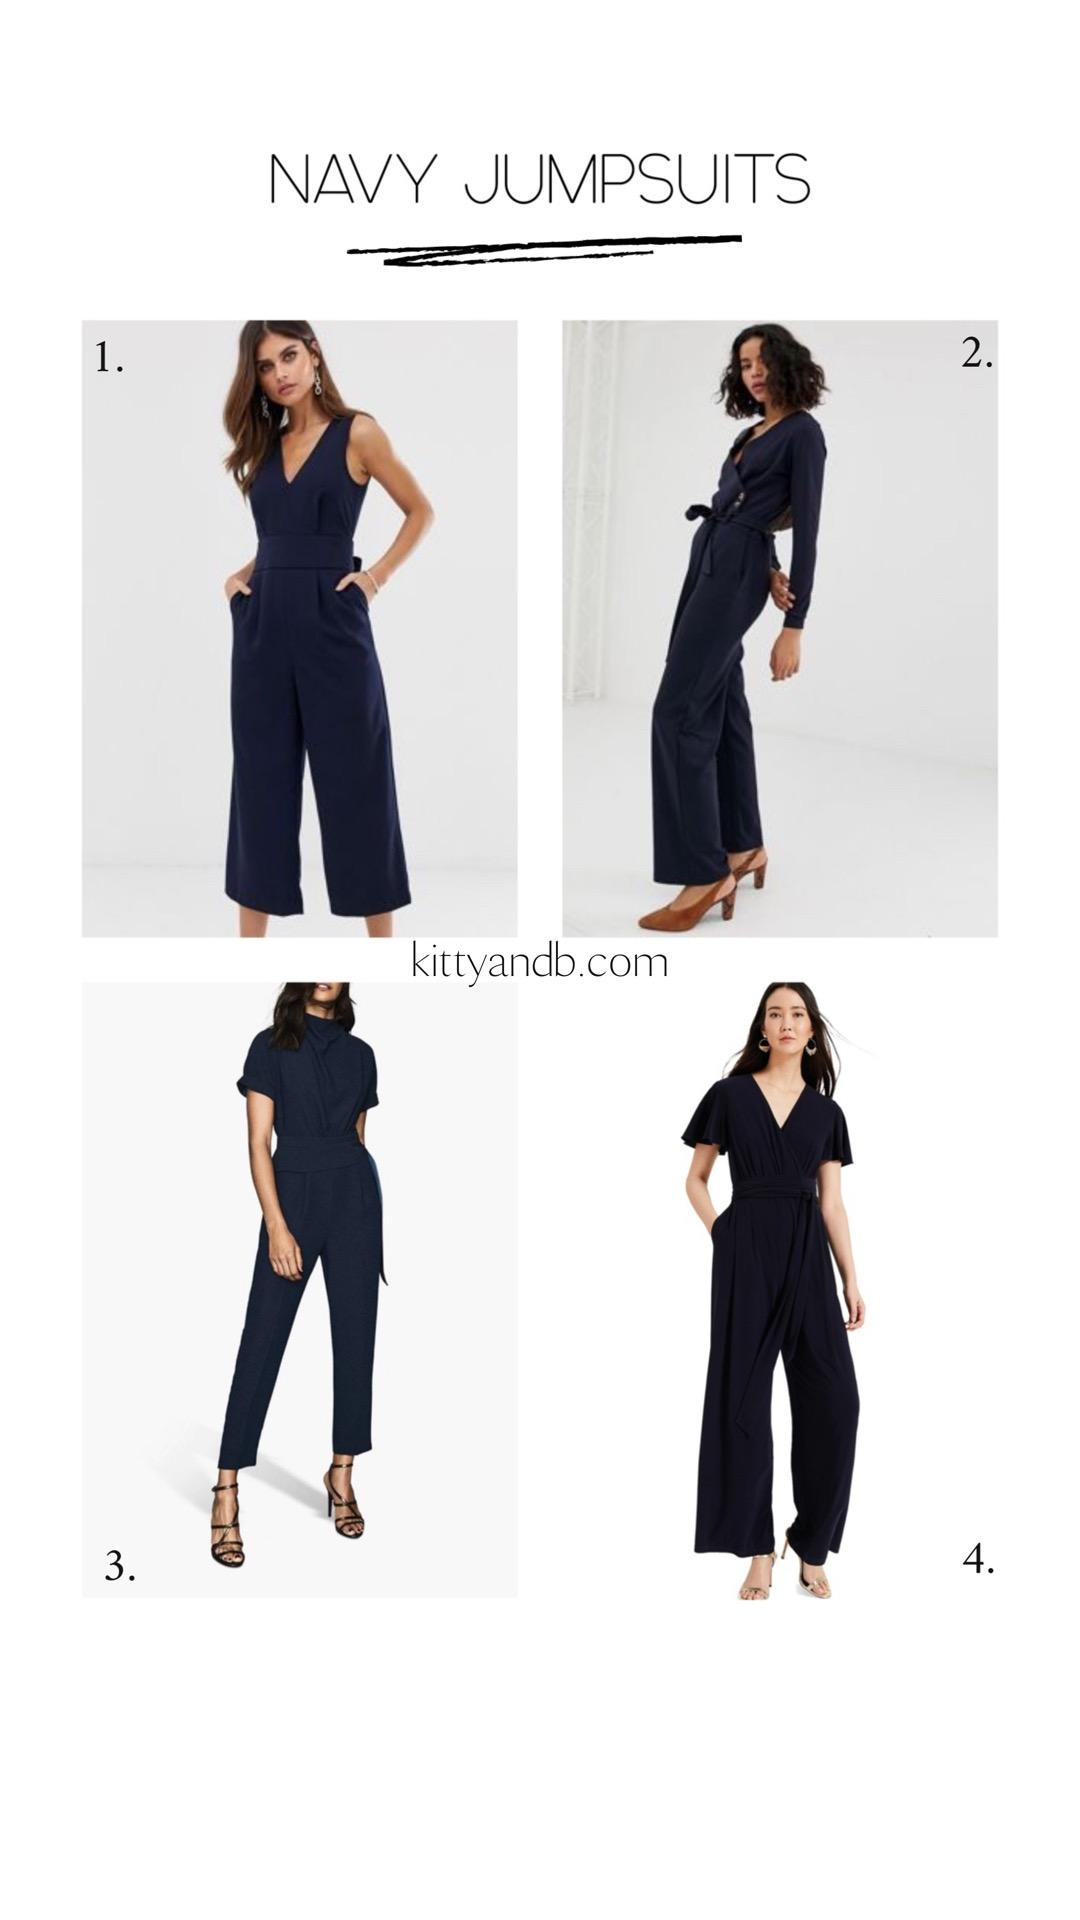 Navy Jumpsuits for all! Navy jumpsuits are classic and stylish and so here are 4 options and the shoes to wear with a jumpsuit | kittyandb.com #jumpsuits #navy #howtowear #outfitideas